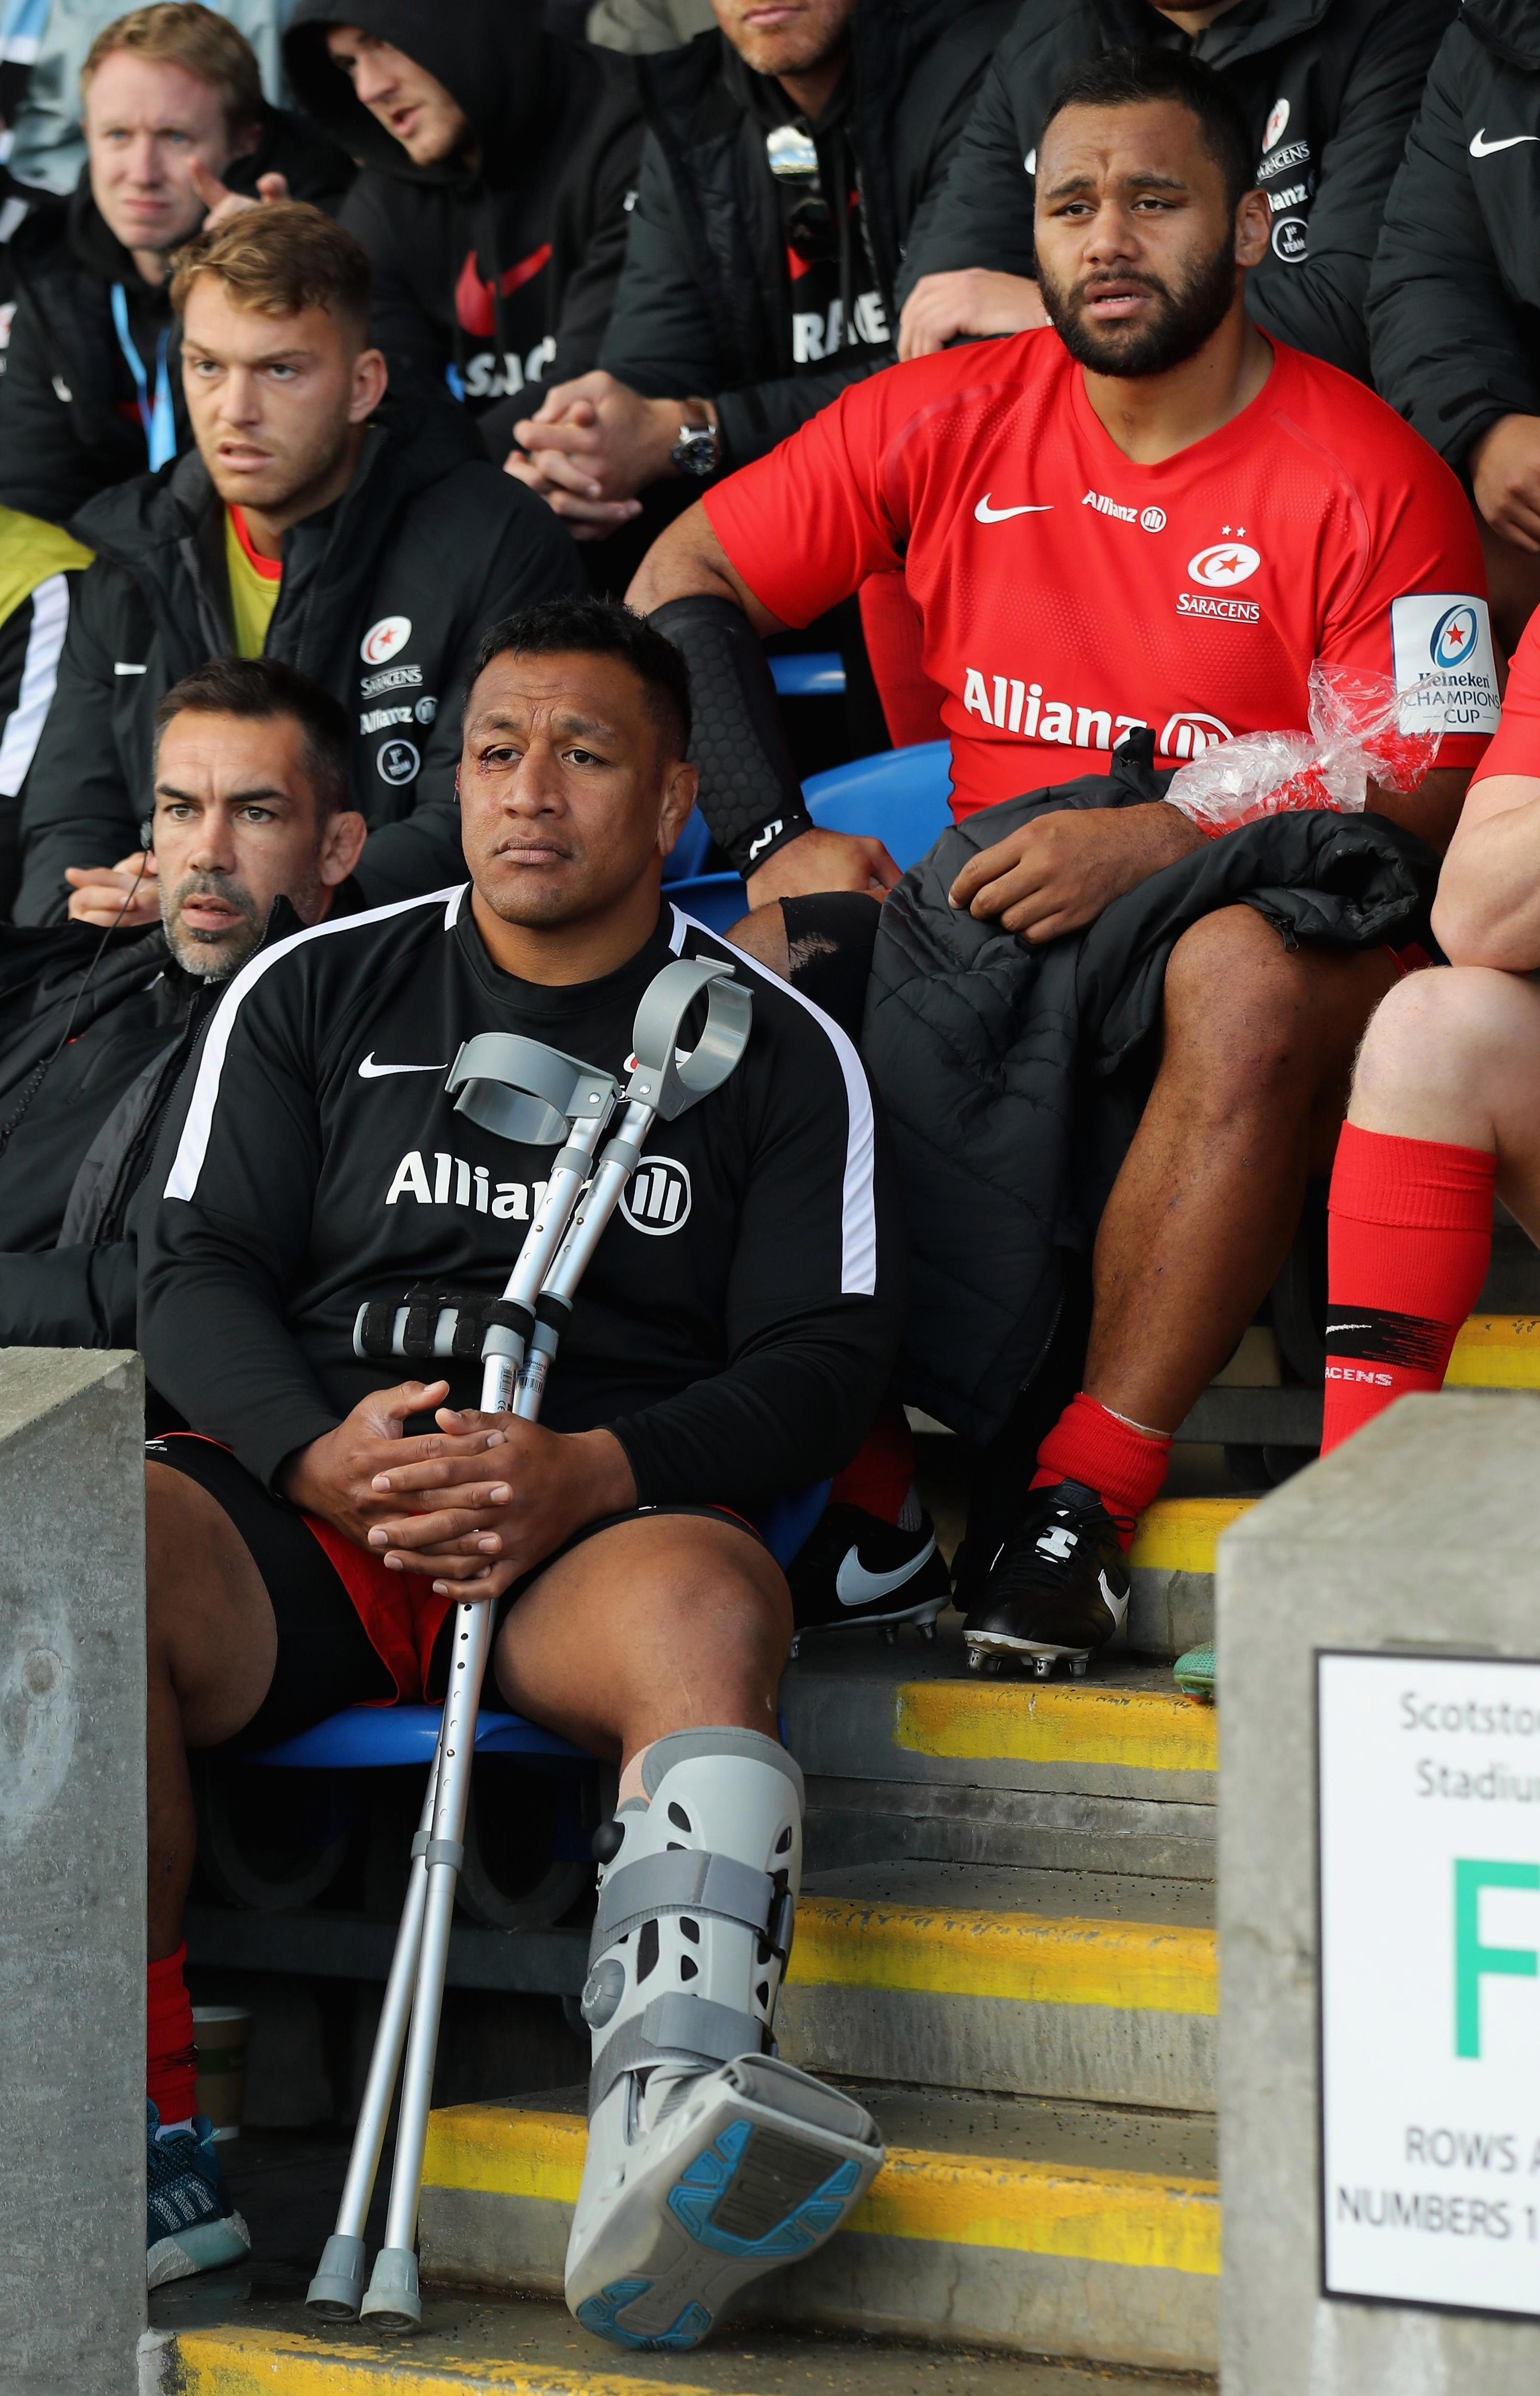 Billy Vunipola, right, and brother Mako reflect on their injuries in a brutal win